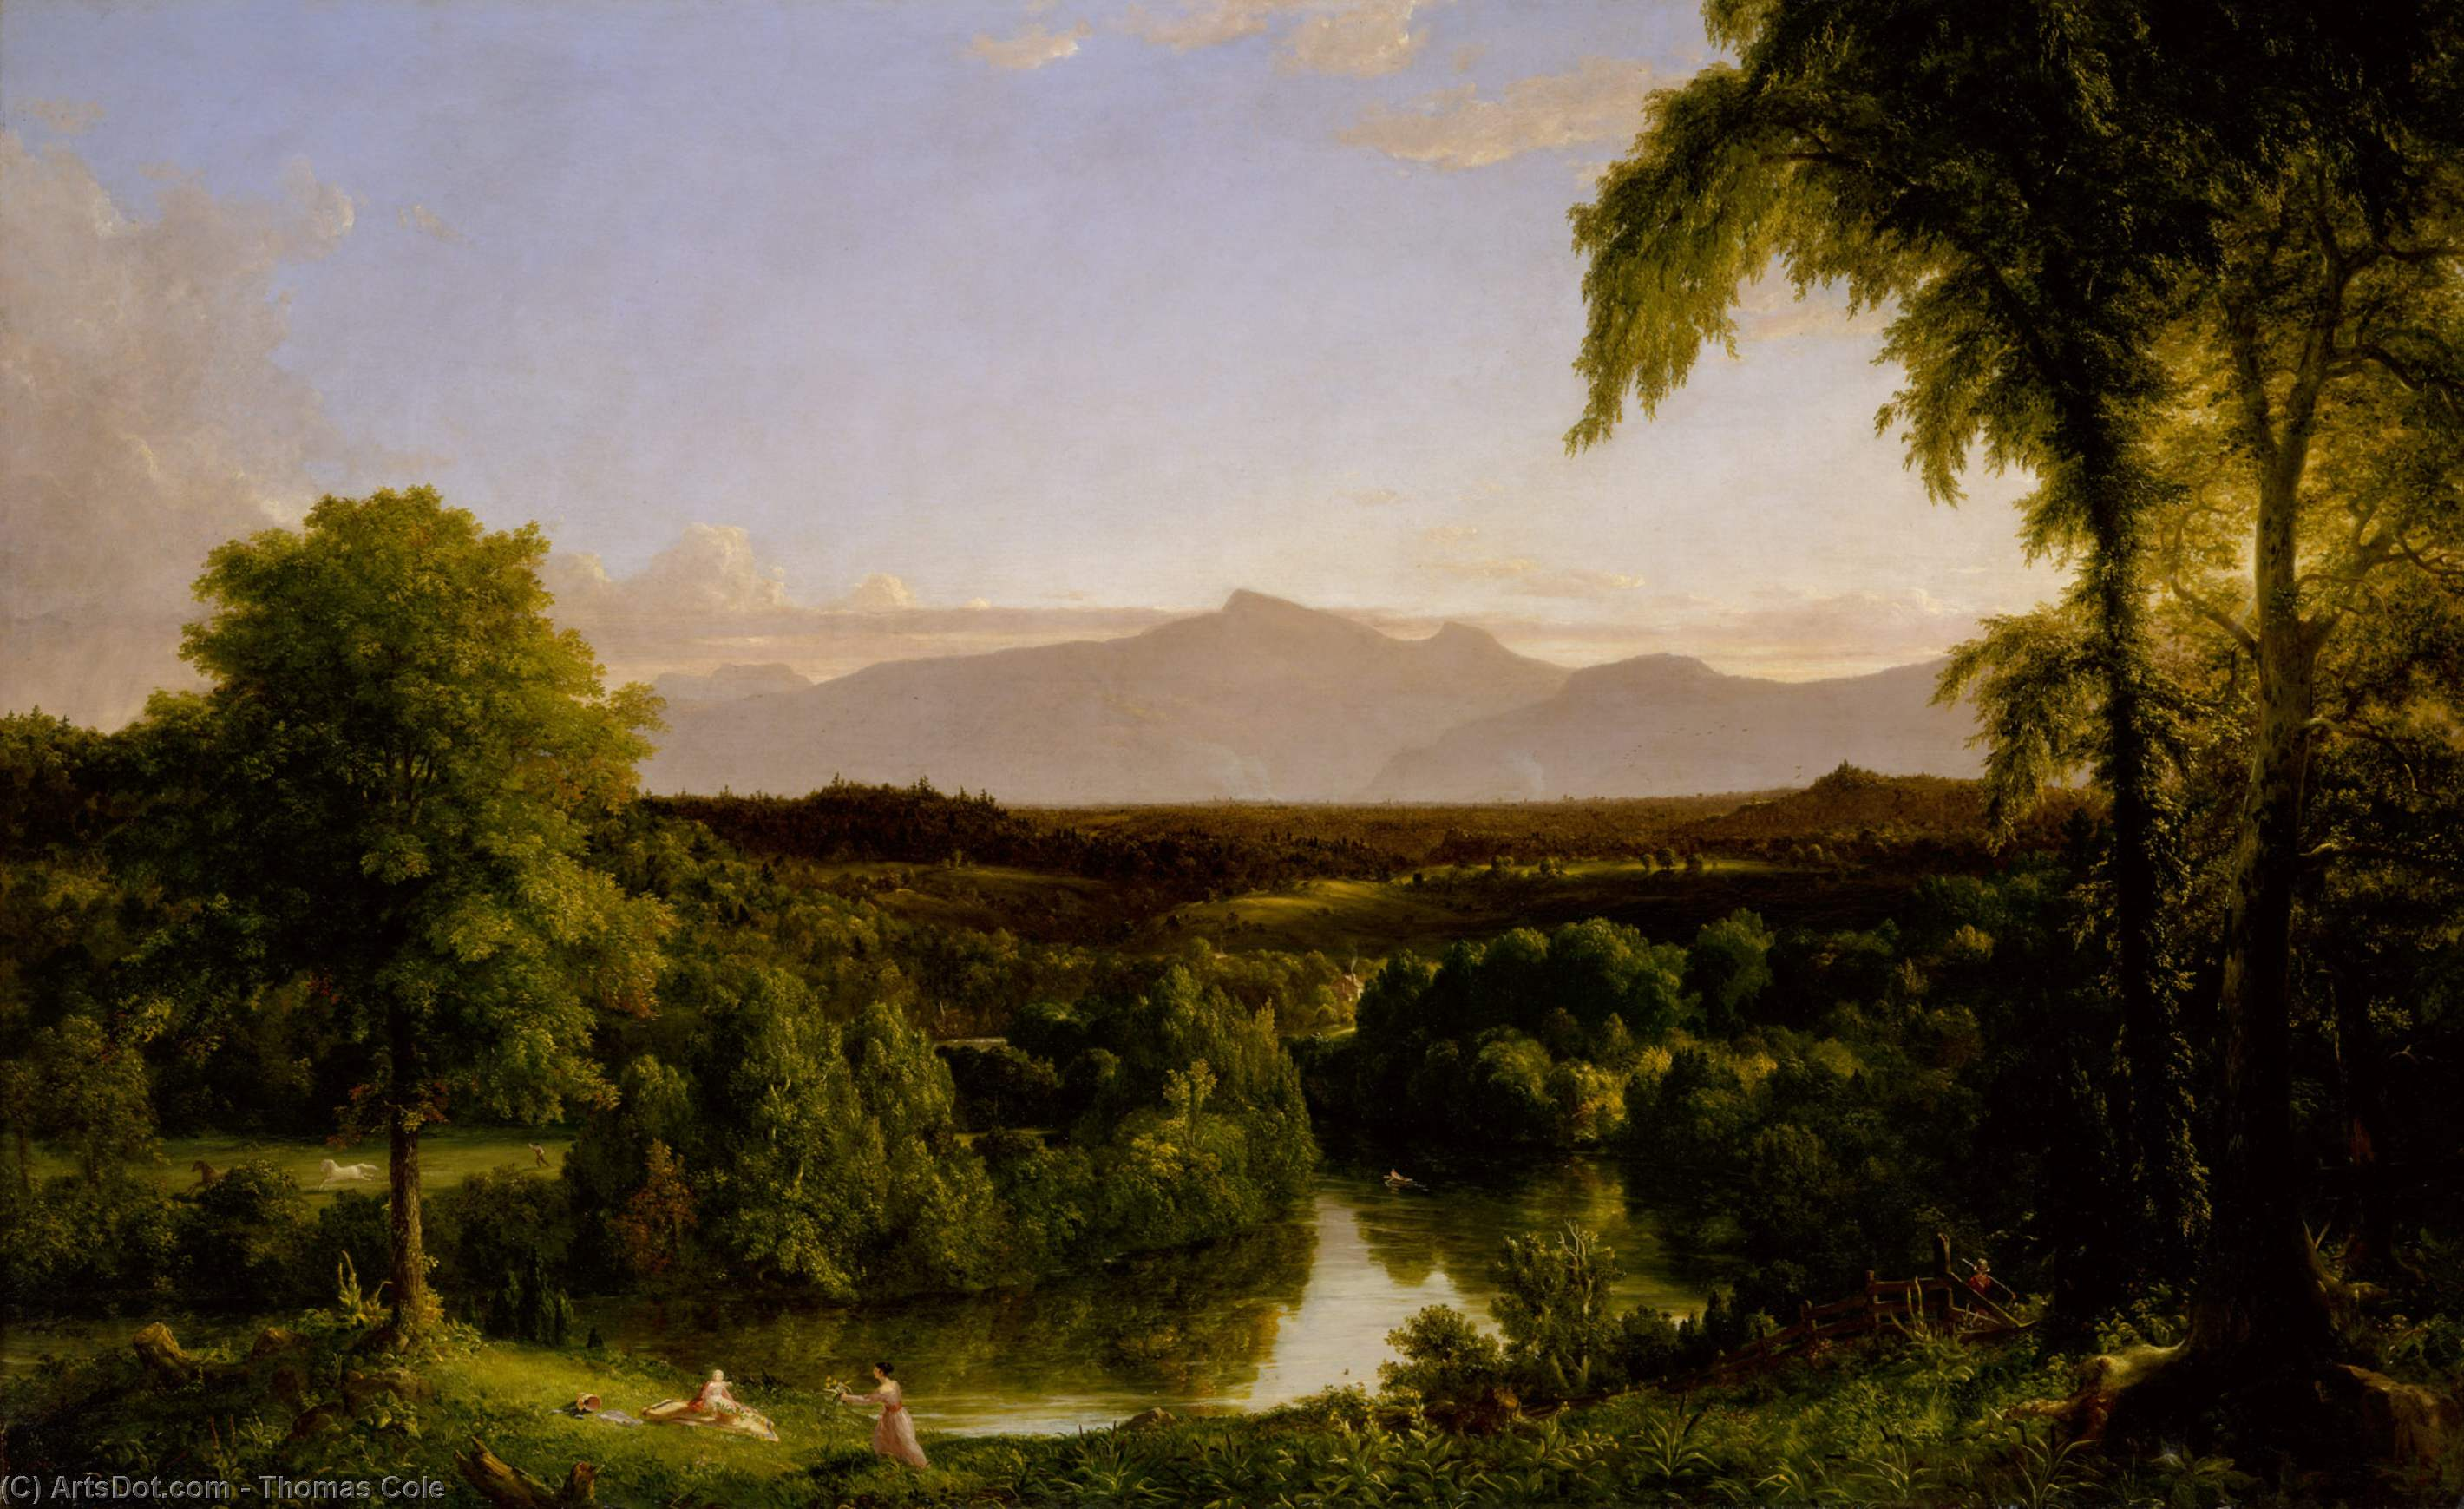 View on the Catskill - Early Autumn, Oil by Thomas Cole (1801-1848, United Kingdom)